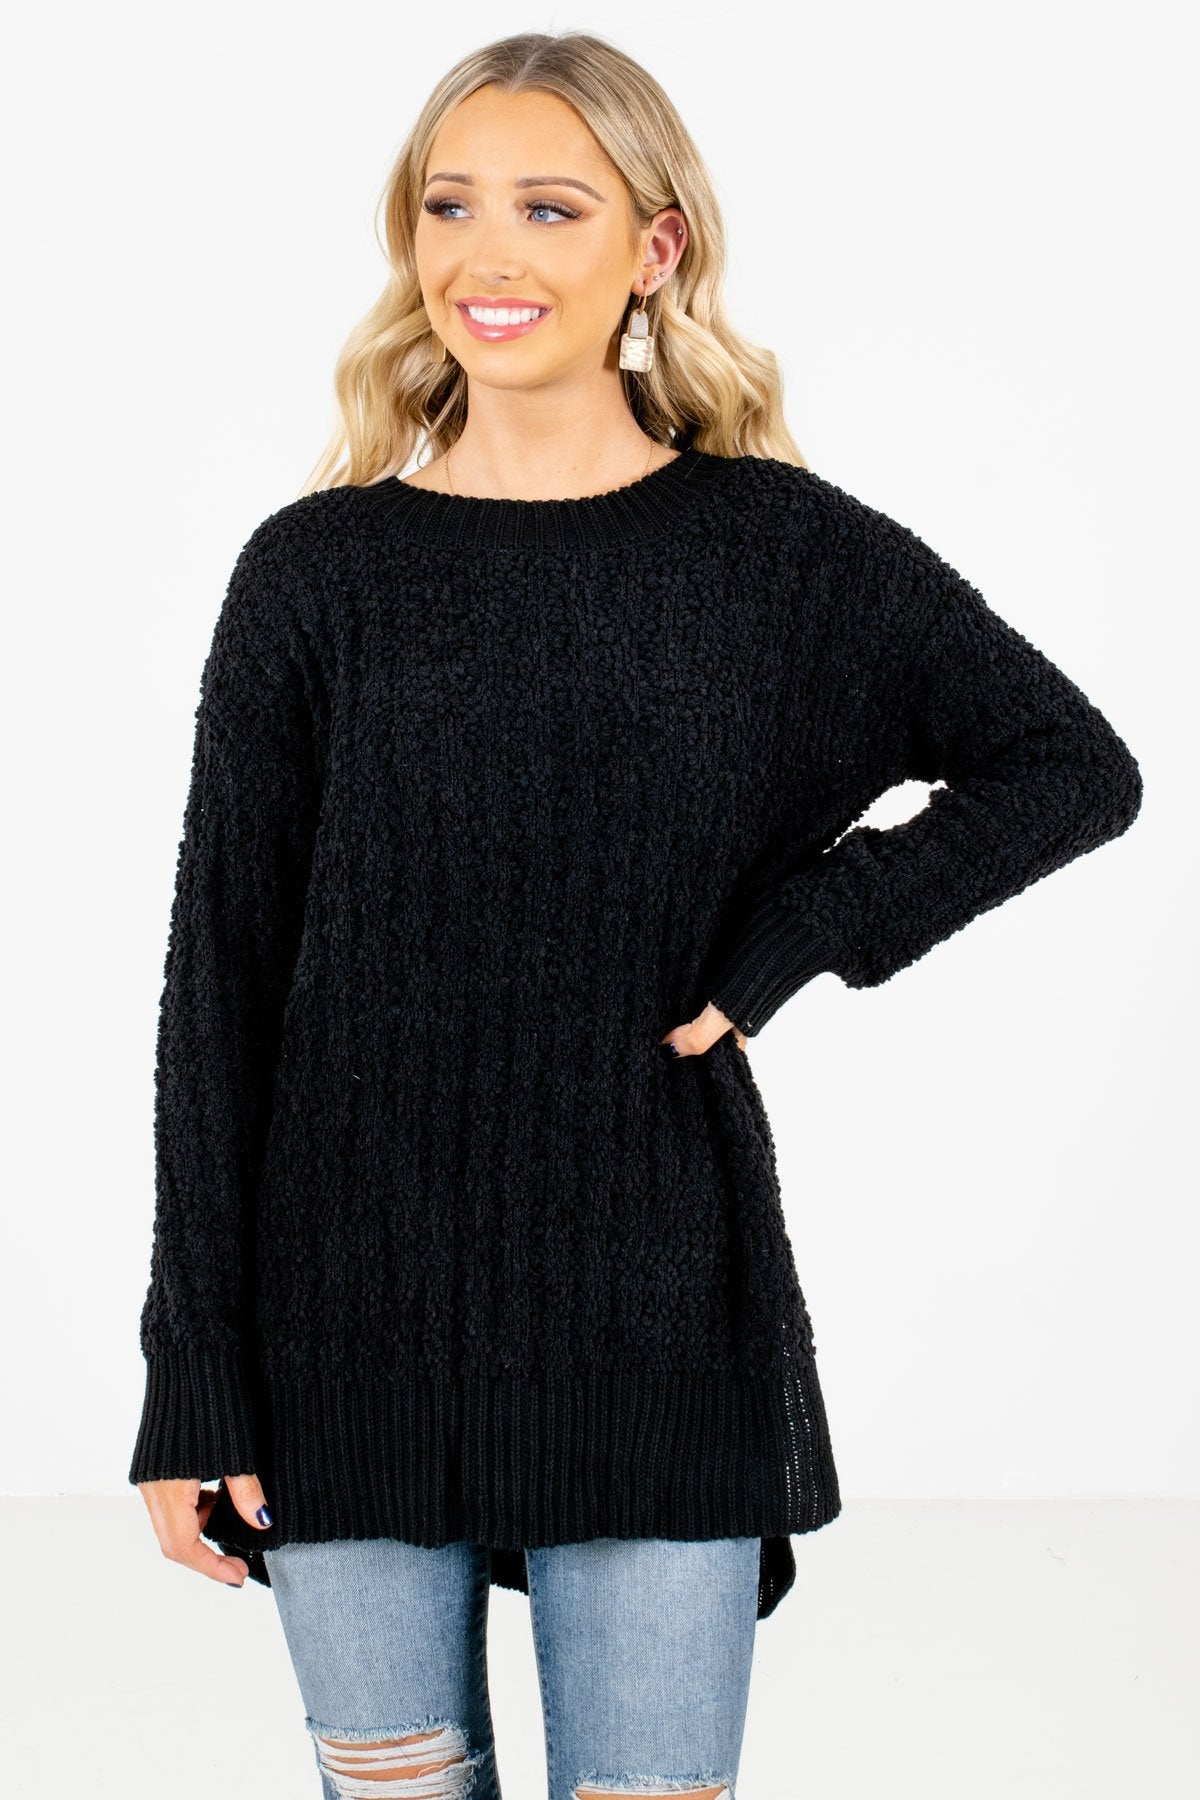 Black High-Quality Popcorn Knit Material Boutique Sweaters for Women